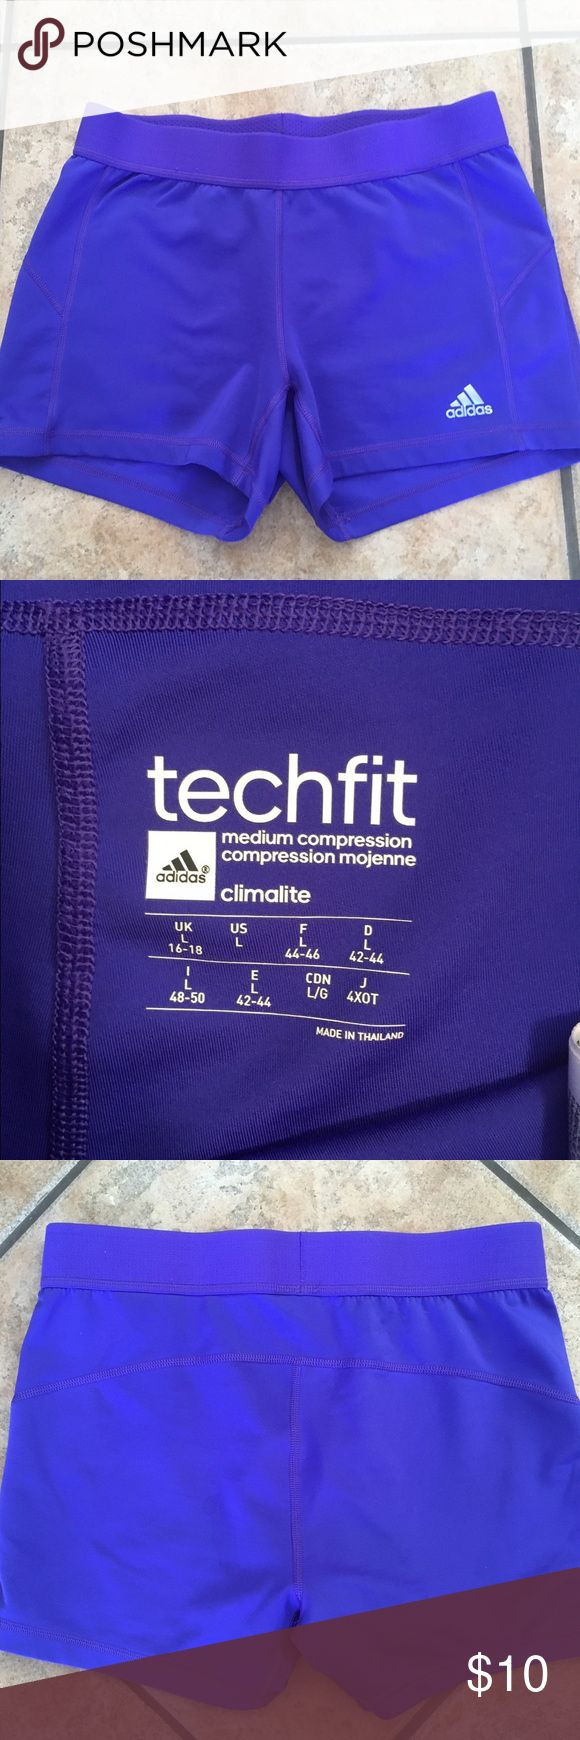 Adidas Climalite Medium Compression Shorts (Large) Adidas Tech Fit Medium Compression Shorts w/ Climalite (Size Large). *Excellent Condition! Adidas Shorts